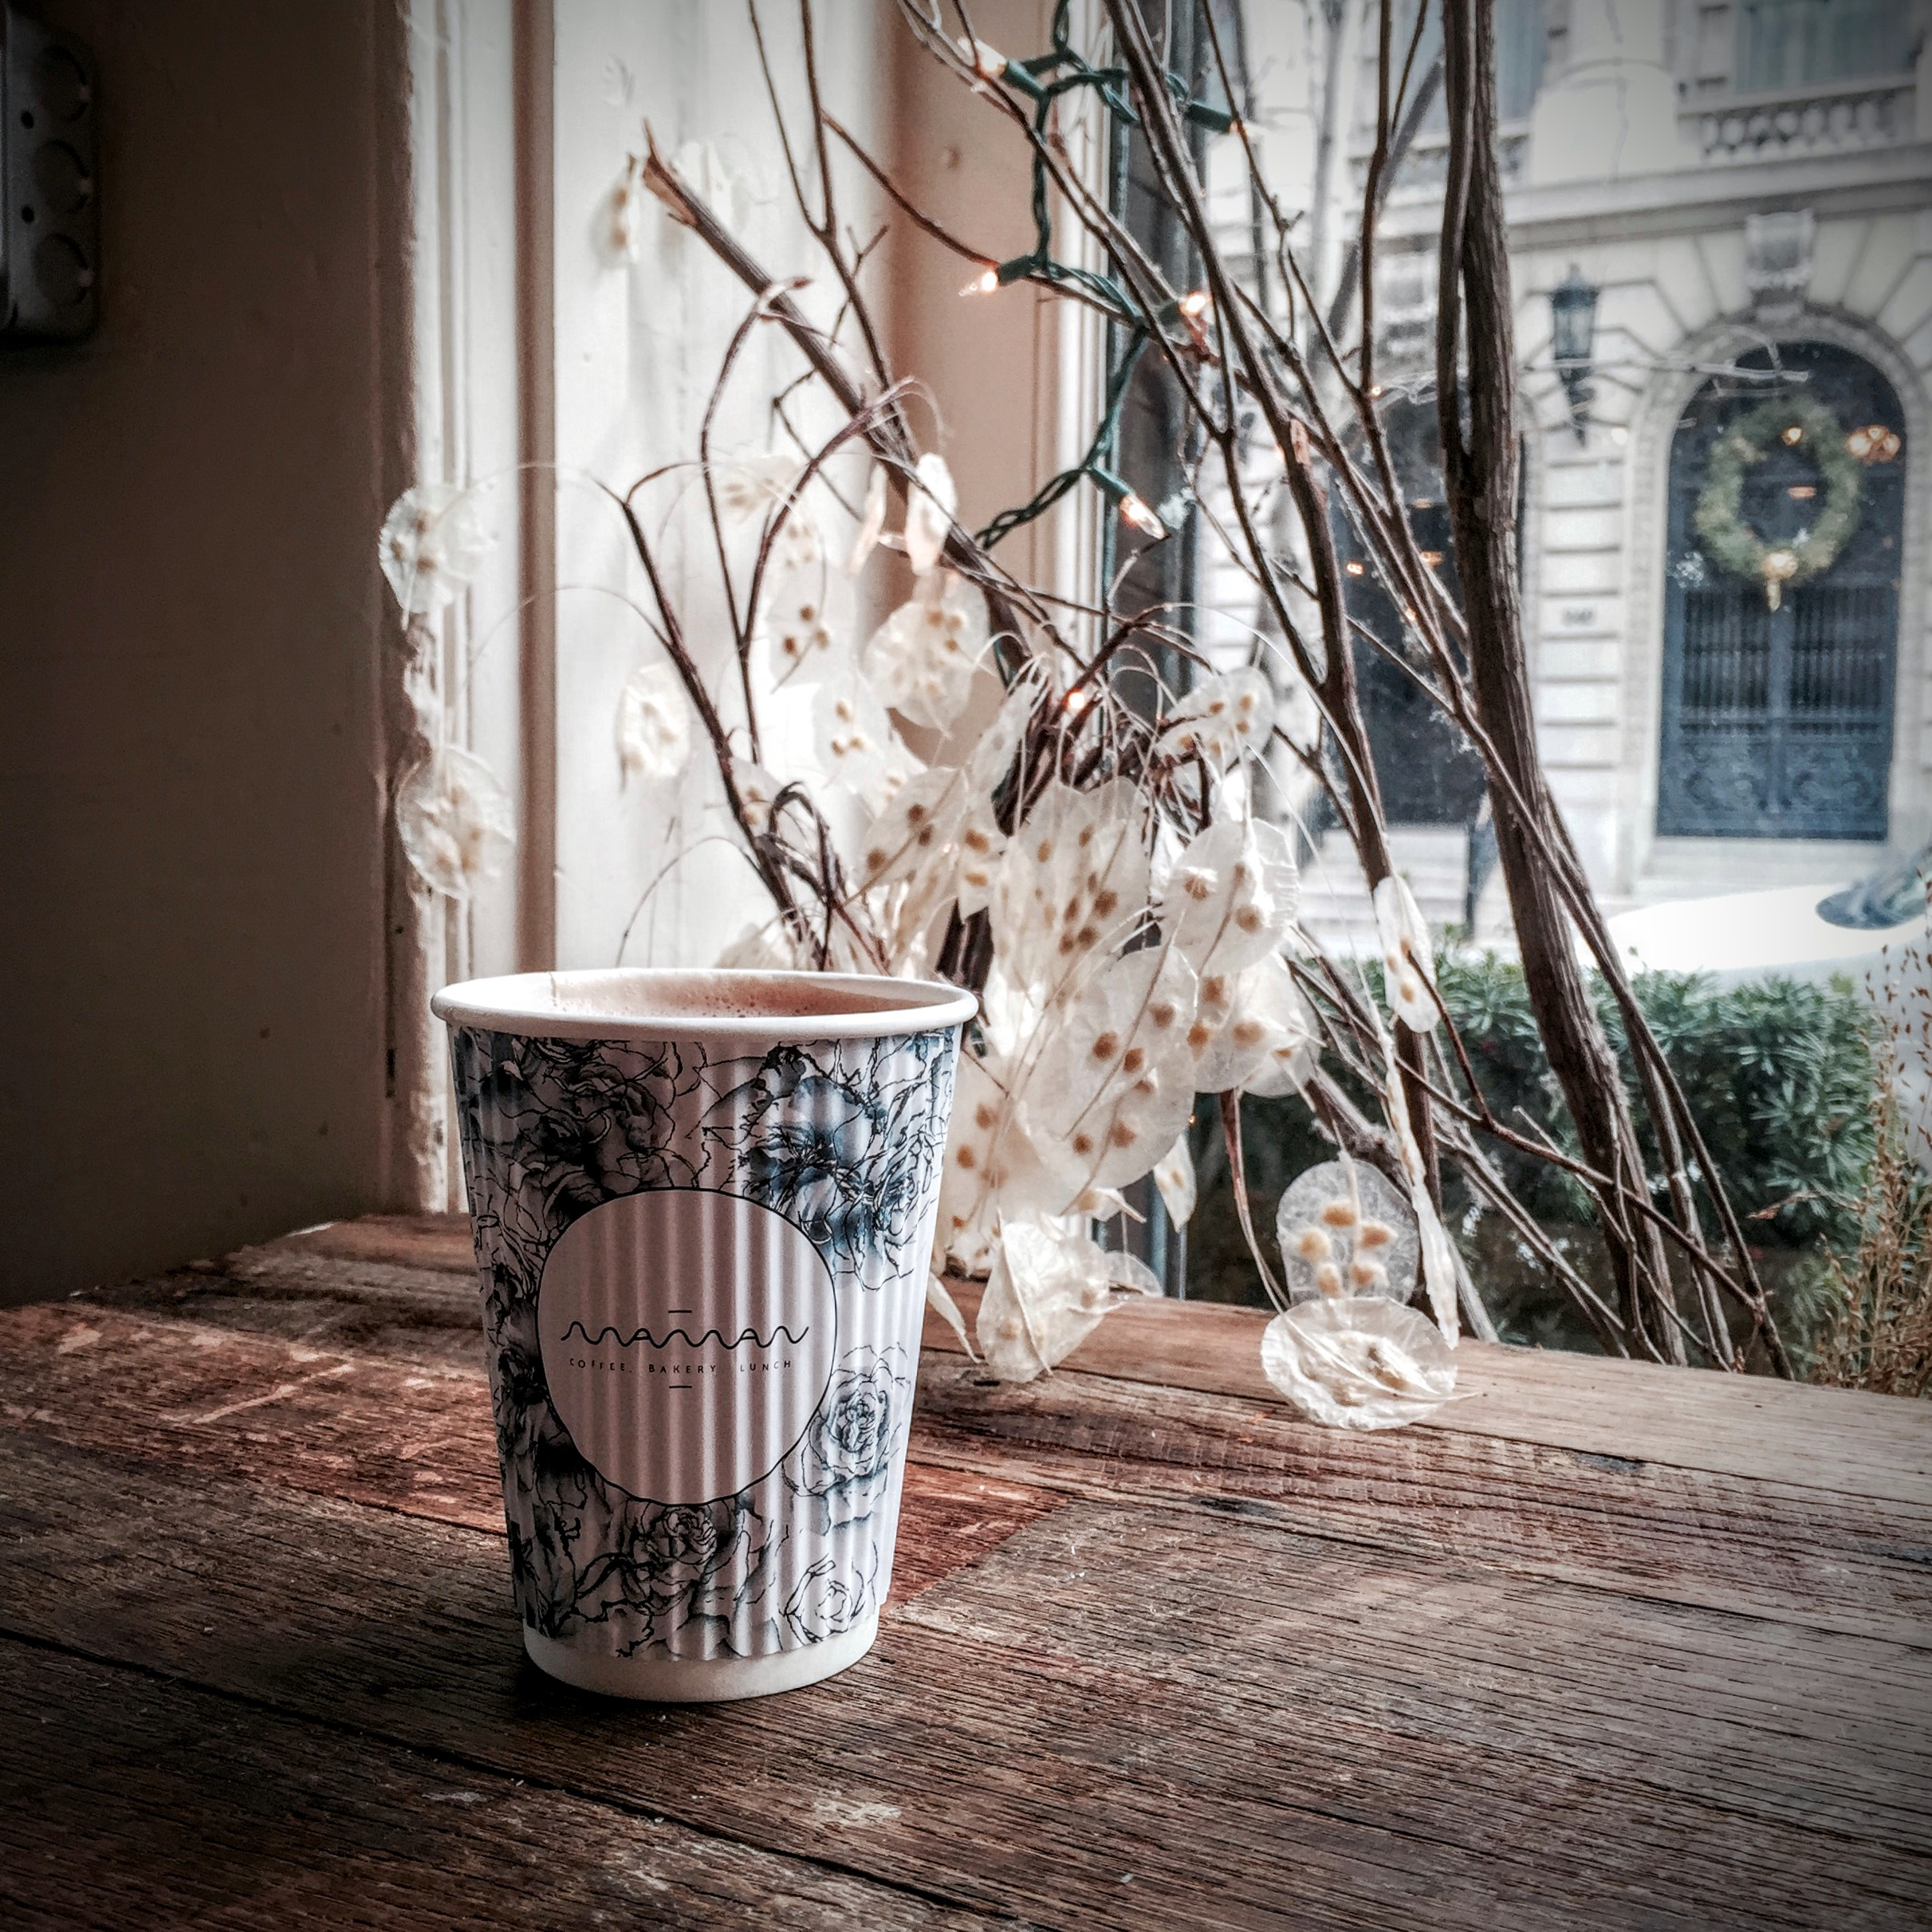 Maman Bakery  - Try the Lavender Hot Chocolate